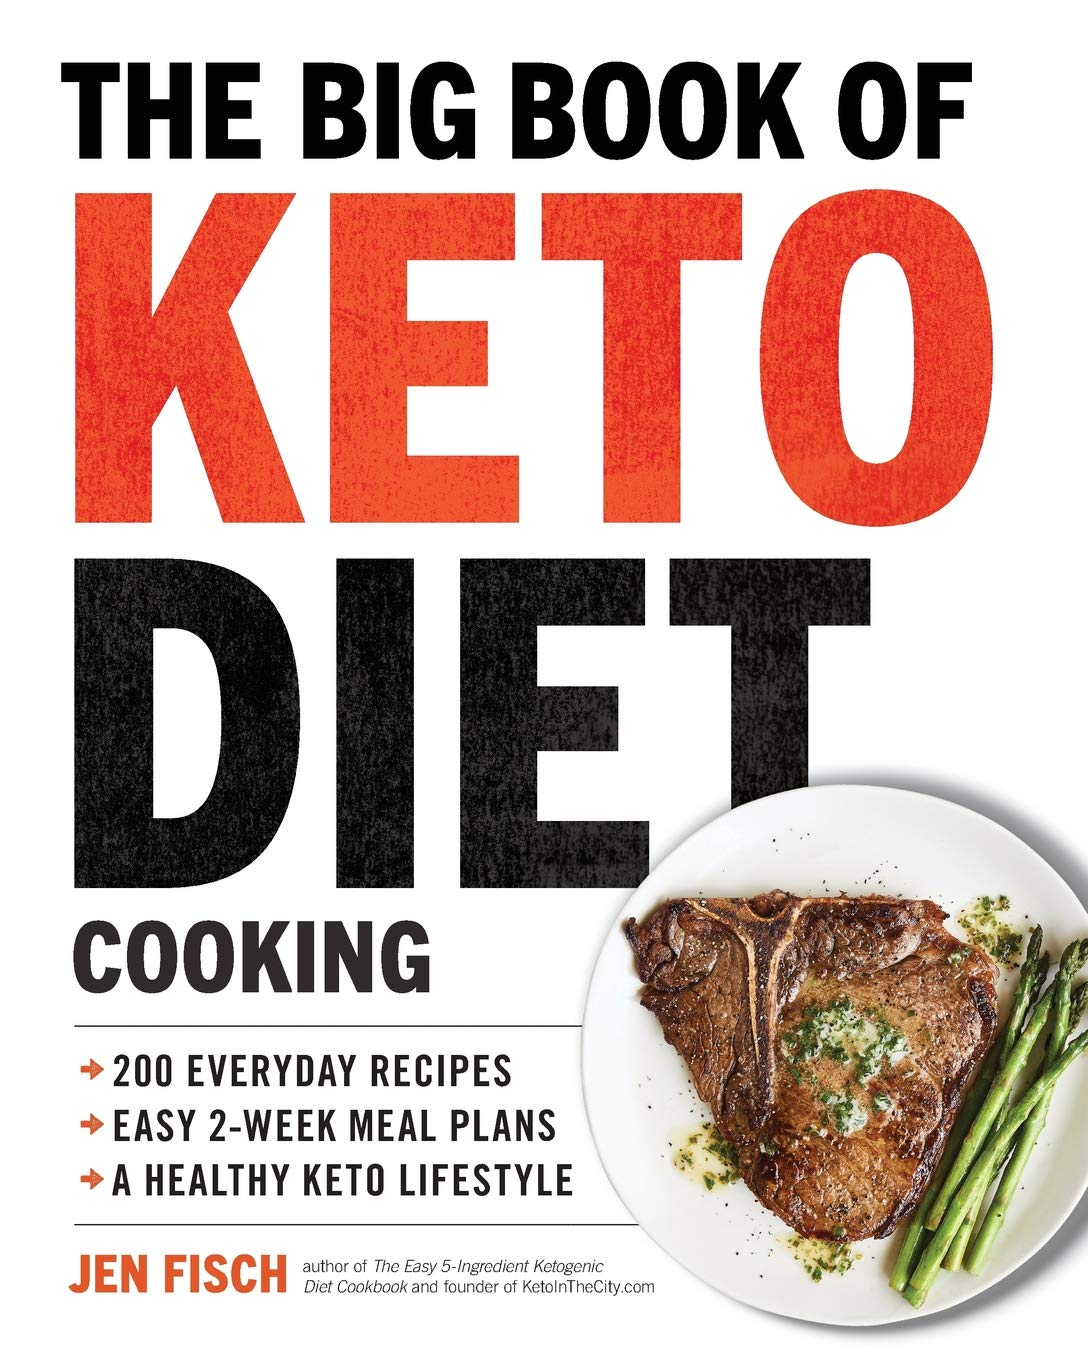 The Big Book Of Ketogenic Diet Cooking 200 Everyday Recipes And Easy 2 Week Meal Plans For A Healthy Keto Lifestyle Fisch Jen Smith Julie 9781939754264 Amazon Com Books